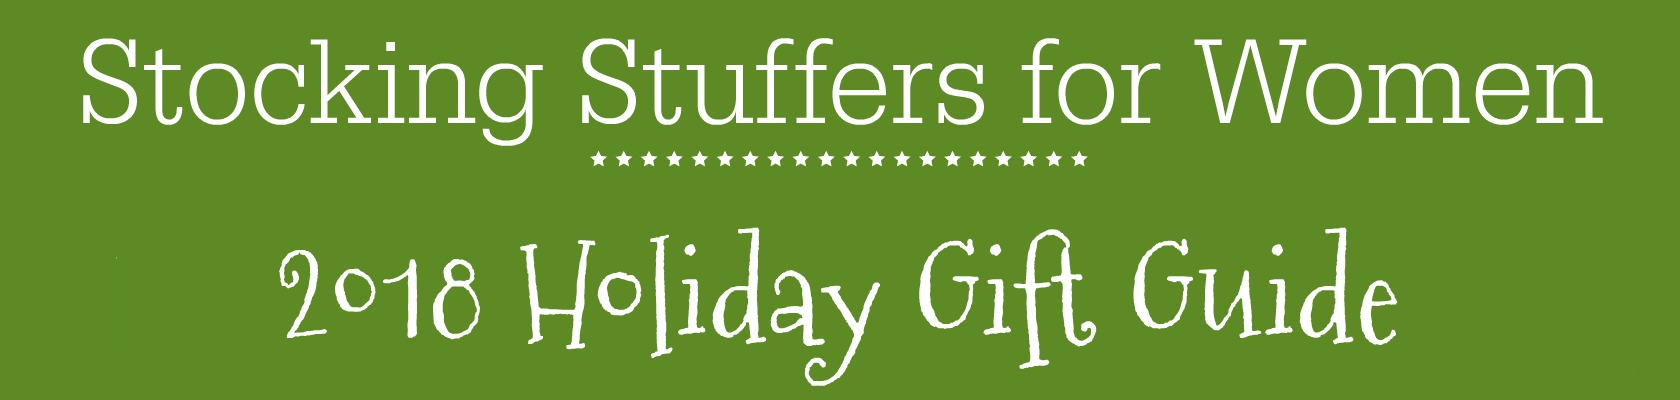 Holiday Gift Guide - Stocking Stuffers for Women